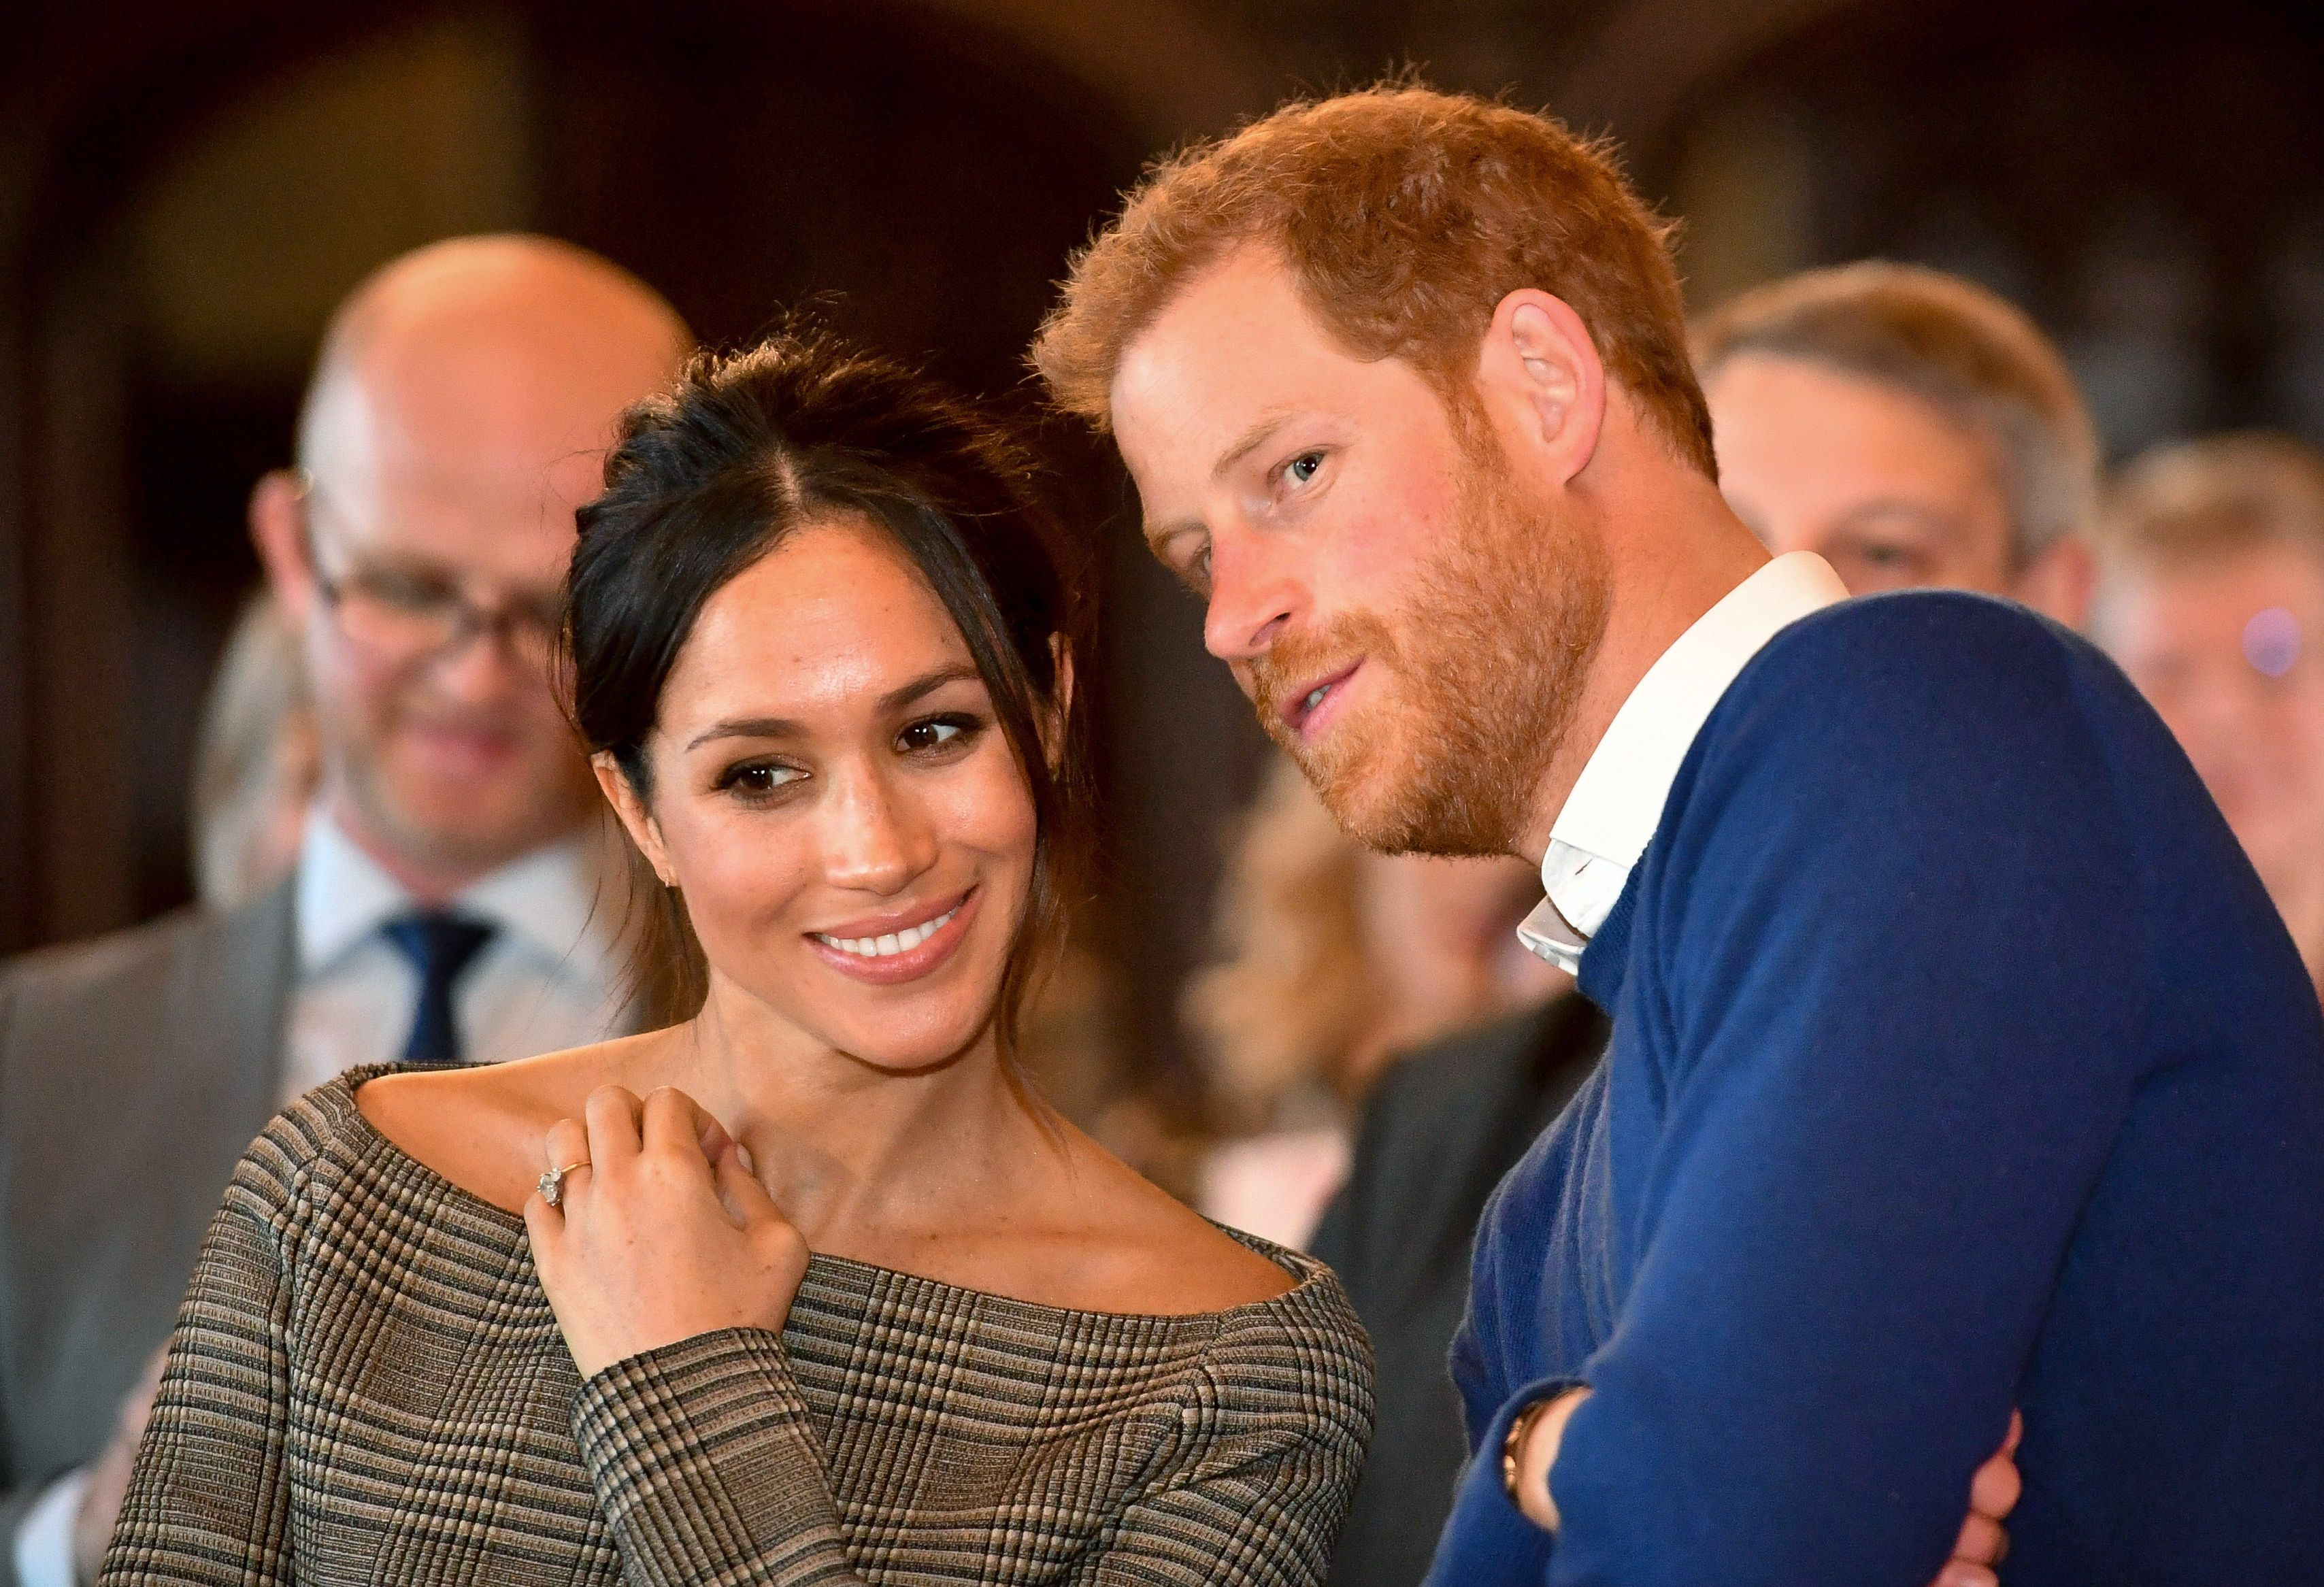 Your Royal Wedding Obsession Could Be Dangerous, a Psychiatrist Warns